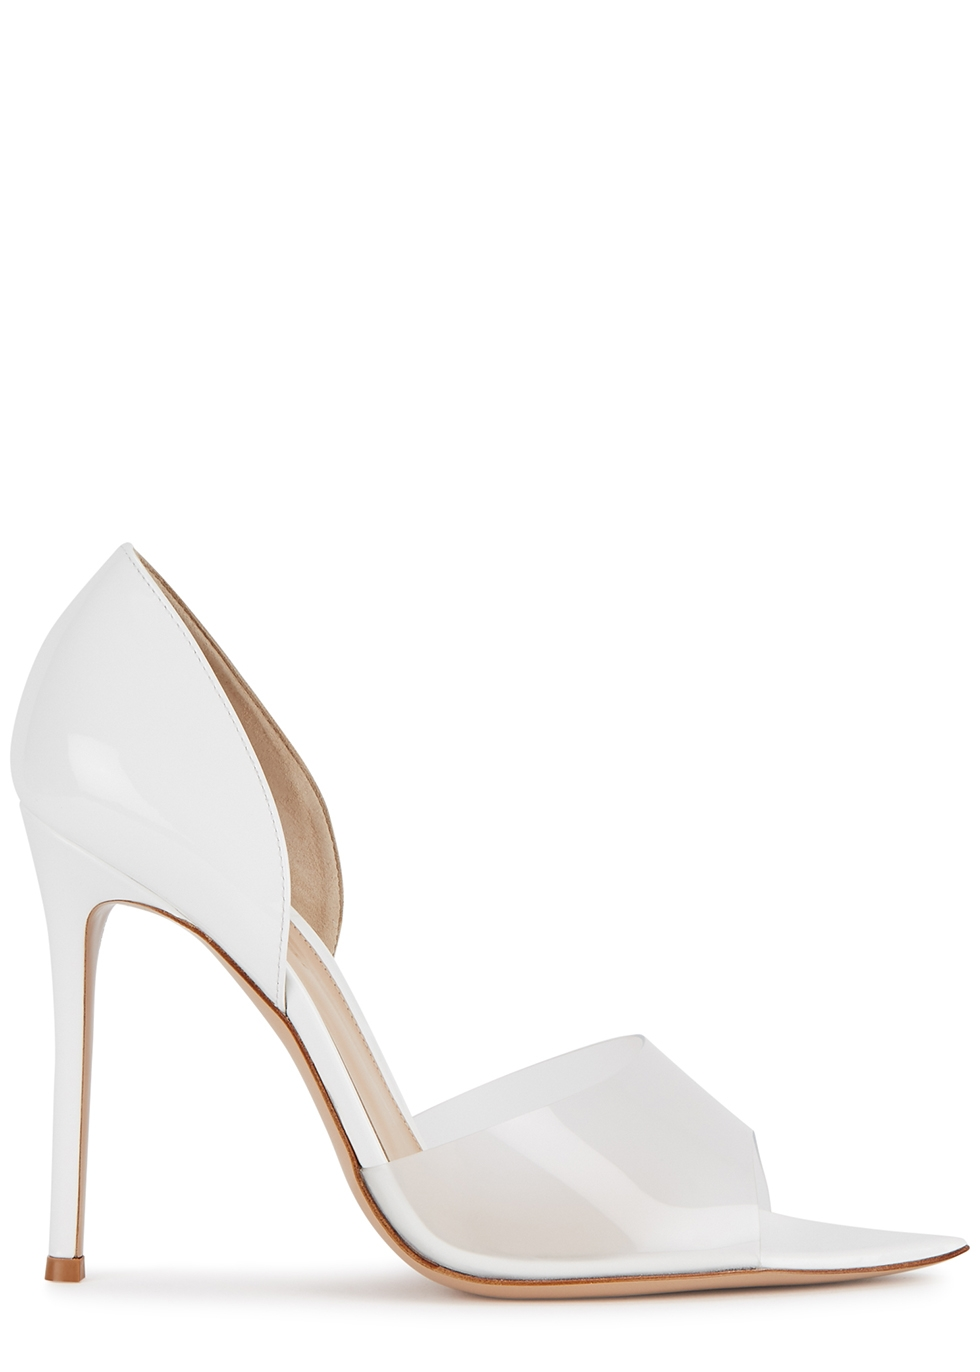 Bree 105 white leather sandals